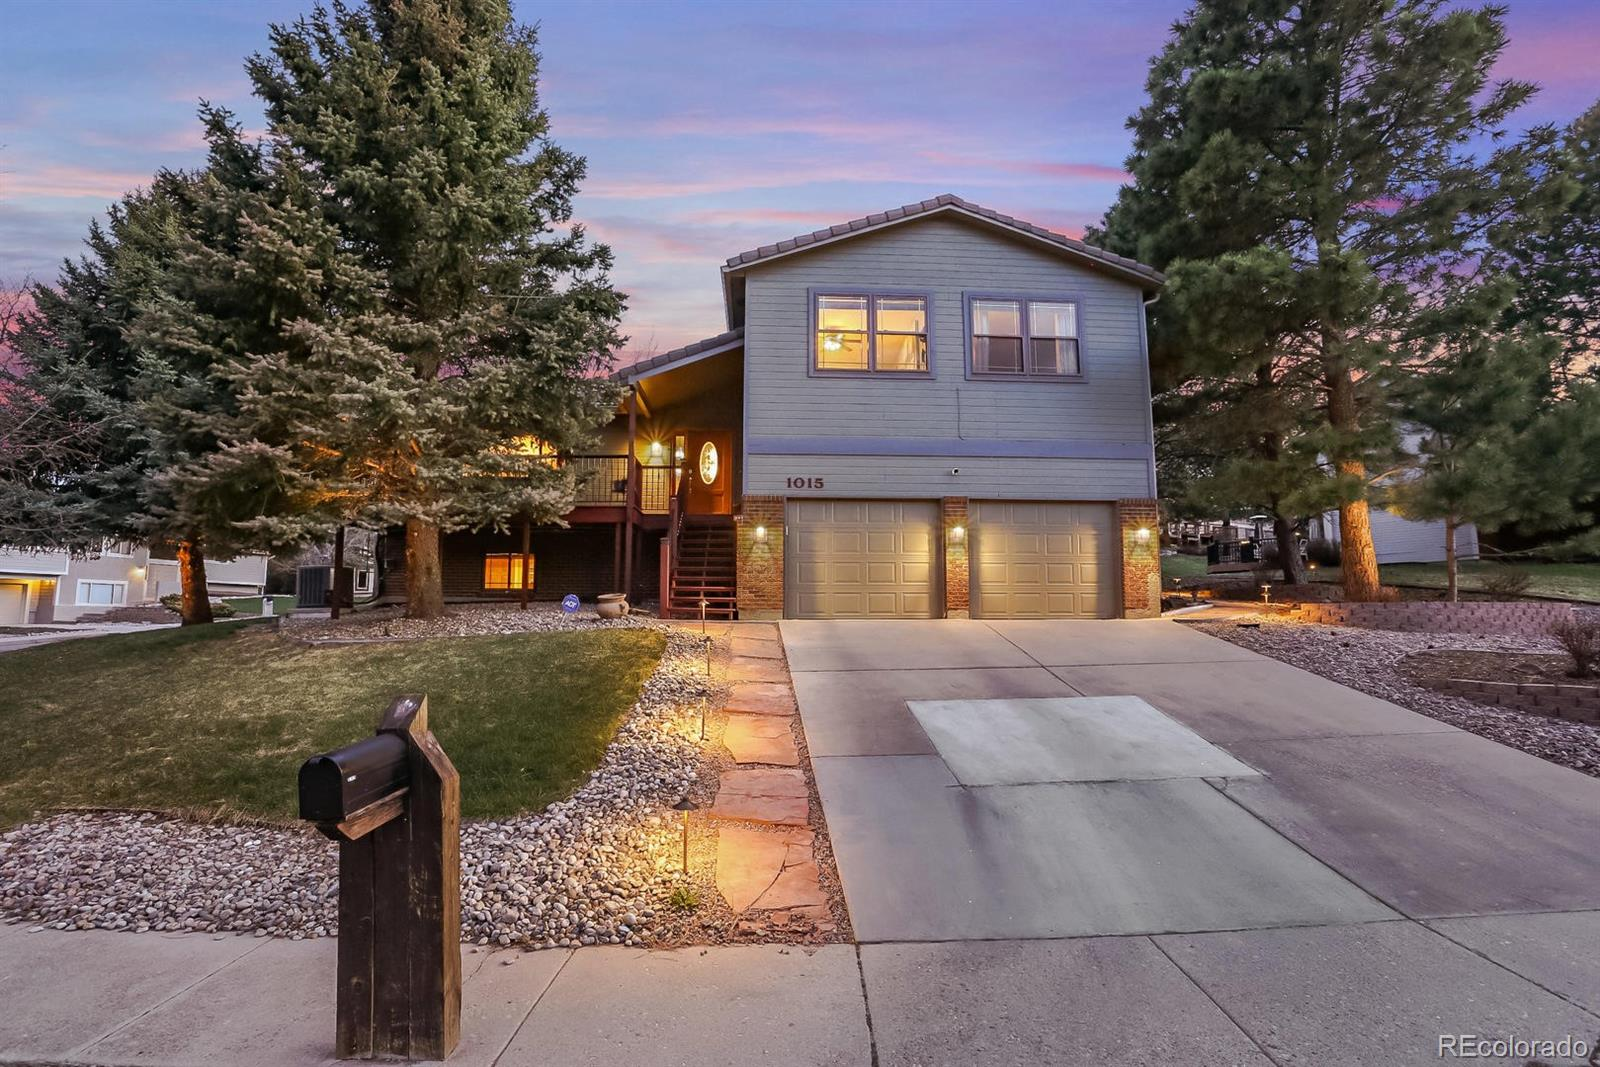 1015 Hunters Ridge Drive, Colorado Springs, CO 80919 - Colorado Springs, CO real estate listing